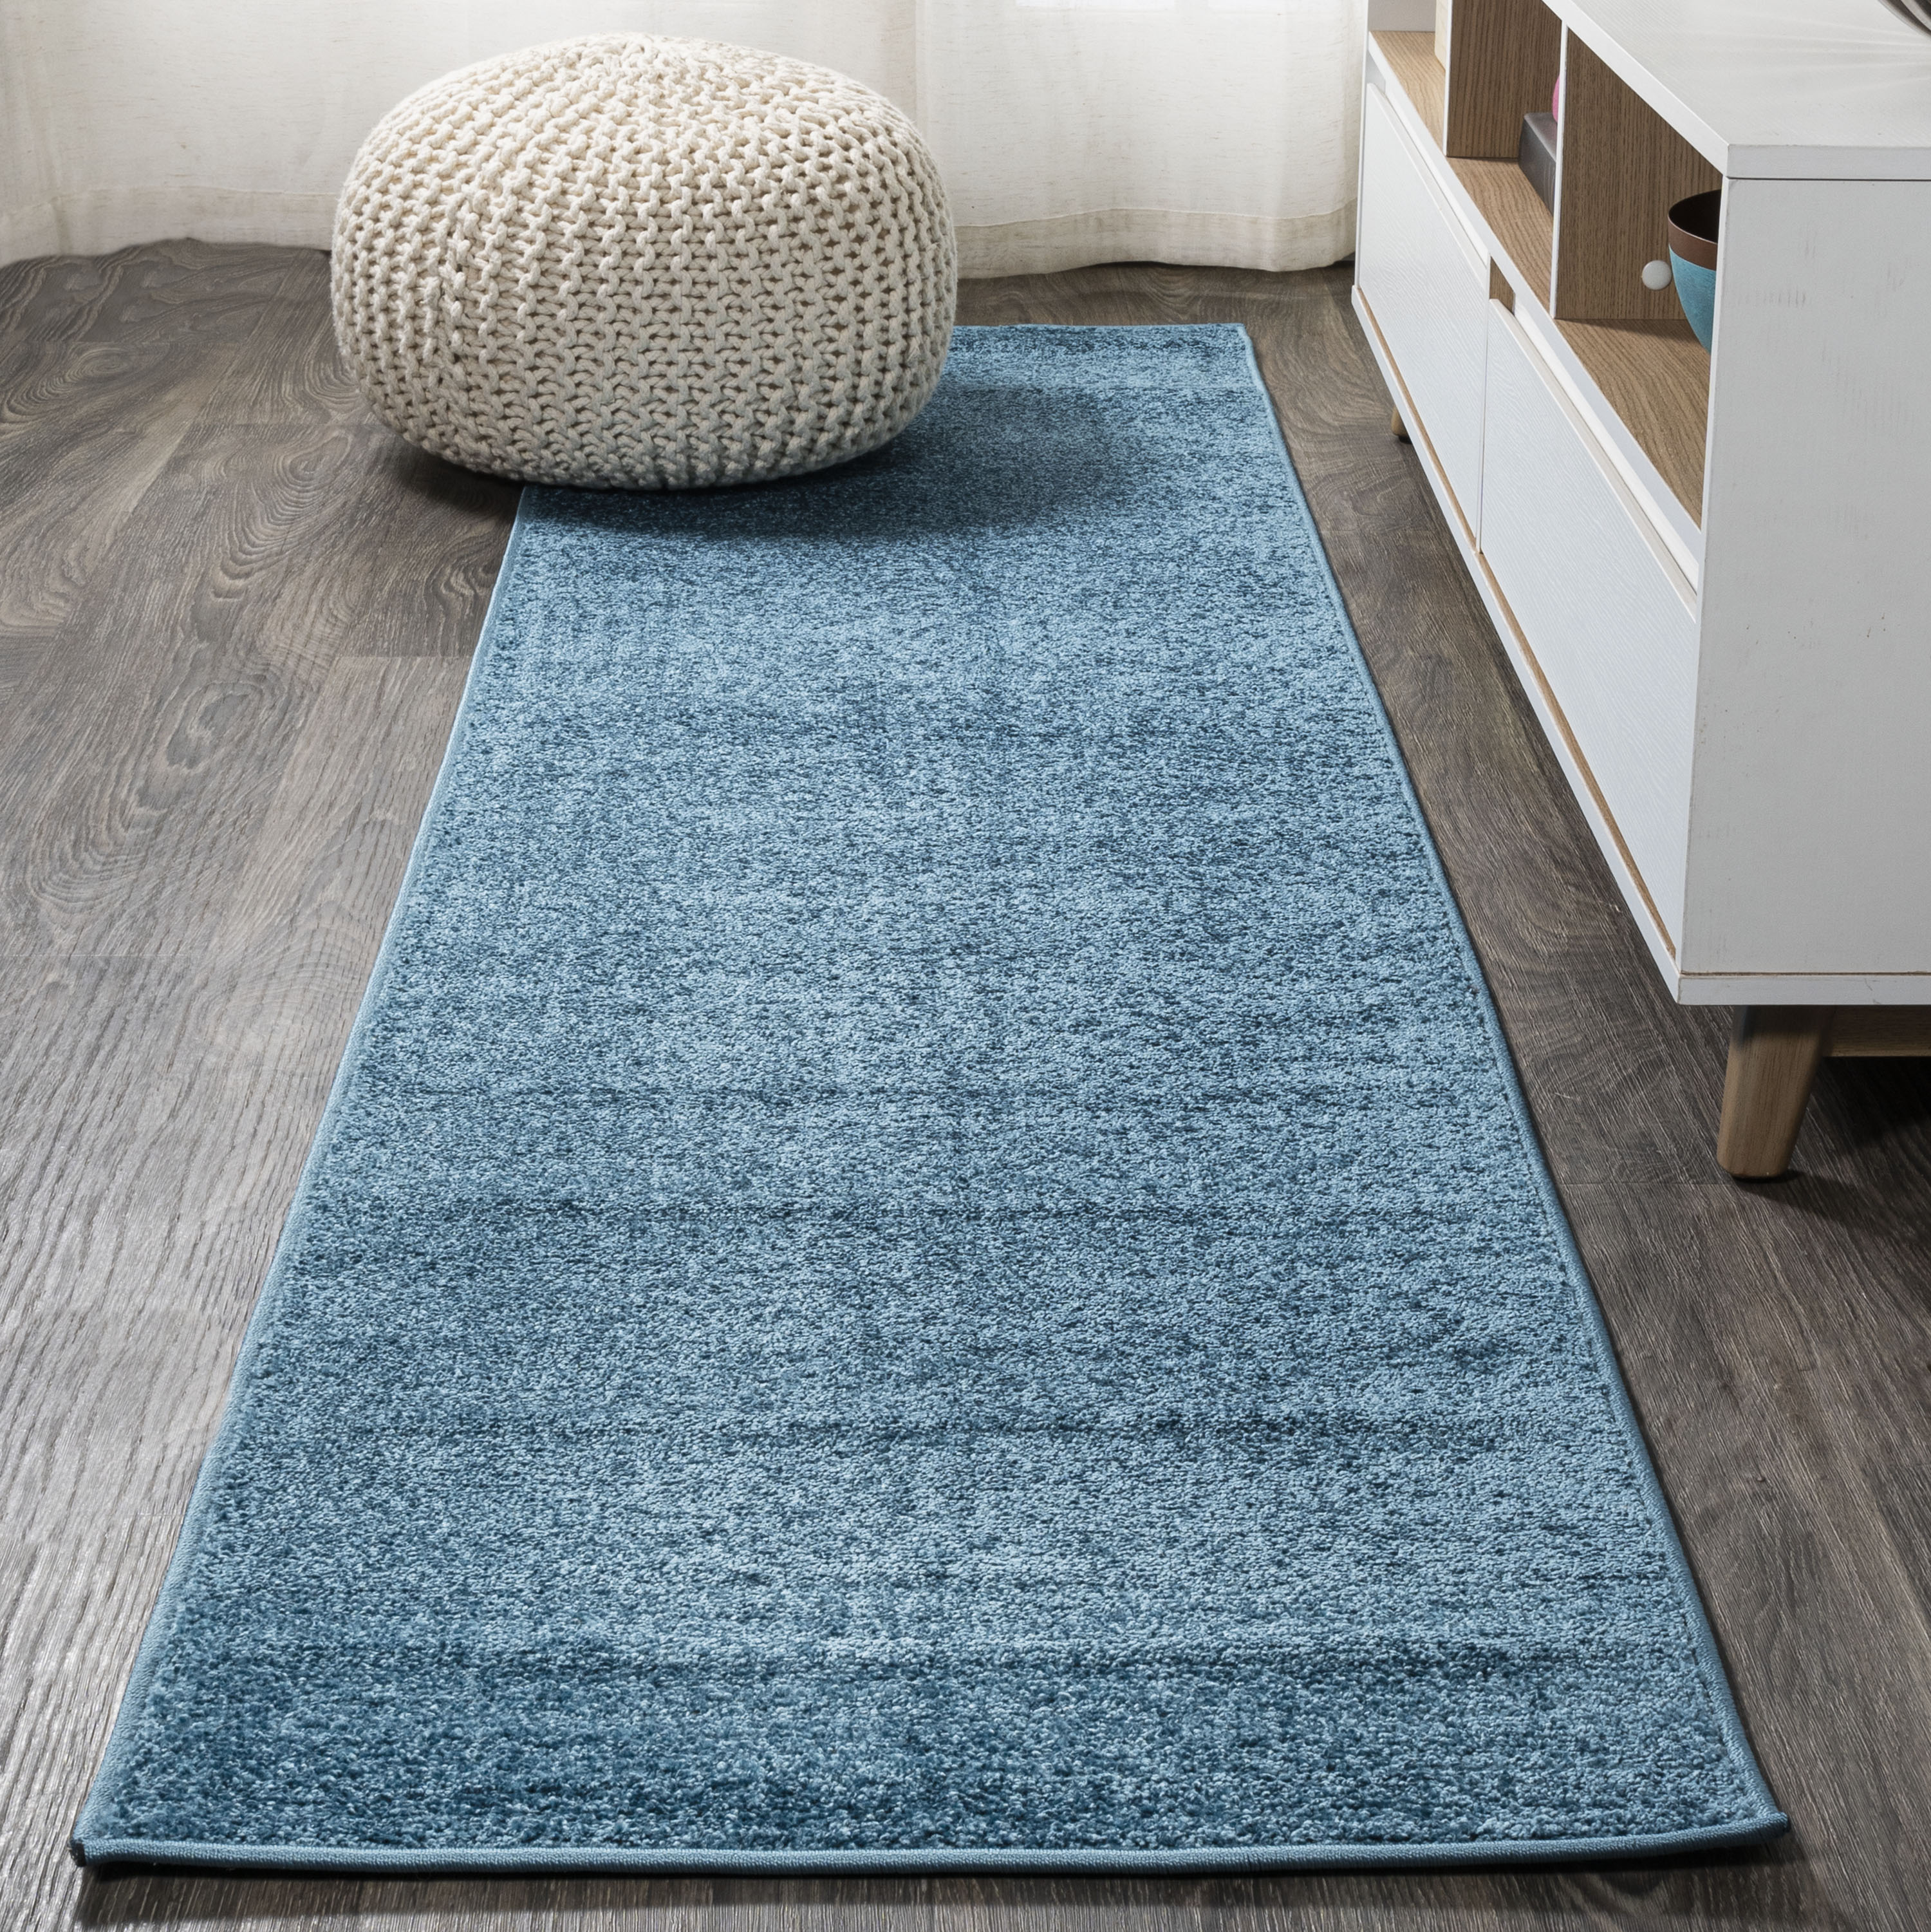 Haze Solid Low-Pile Turquoise 2 ft. x 8 ft. Runner Rug